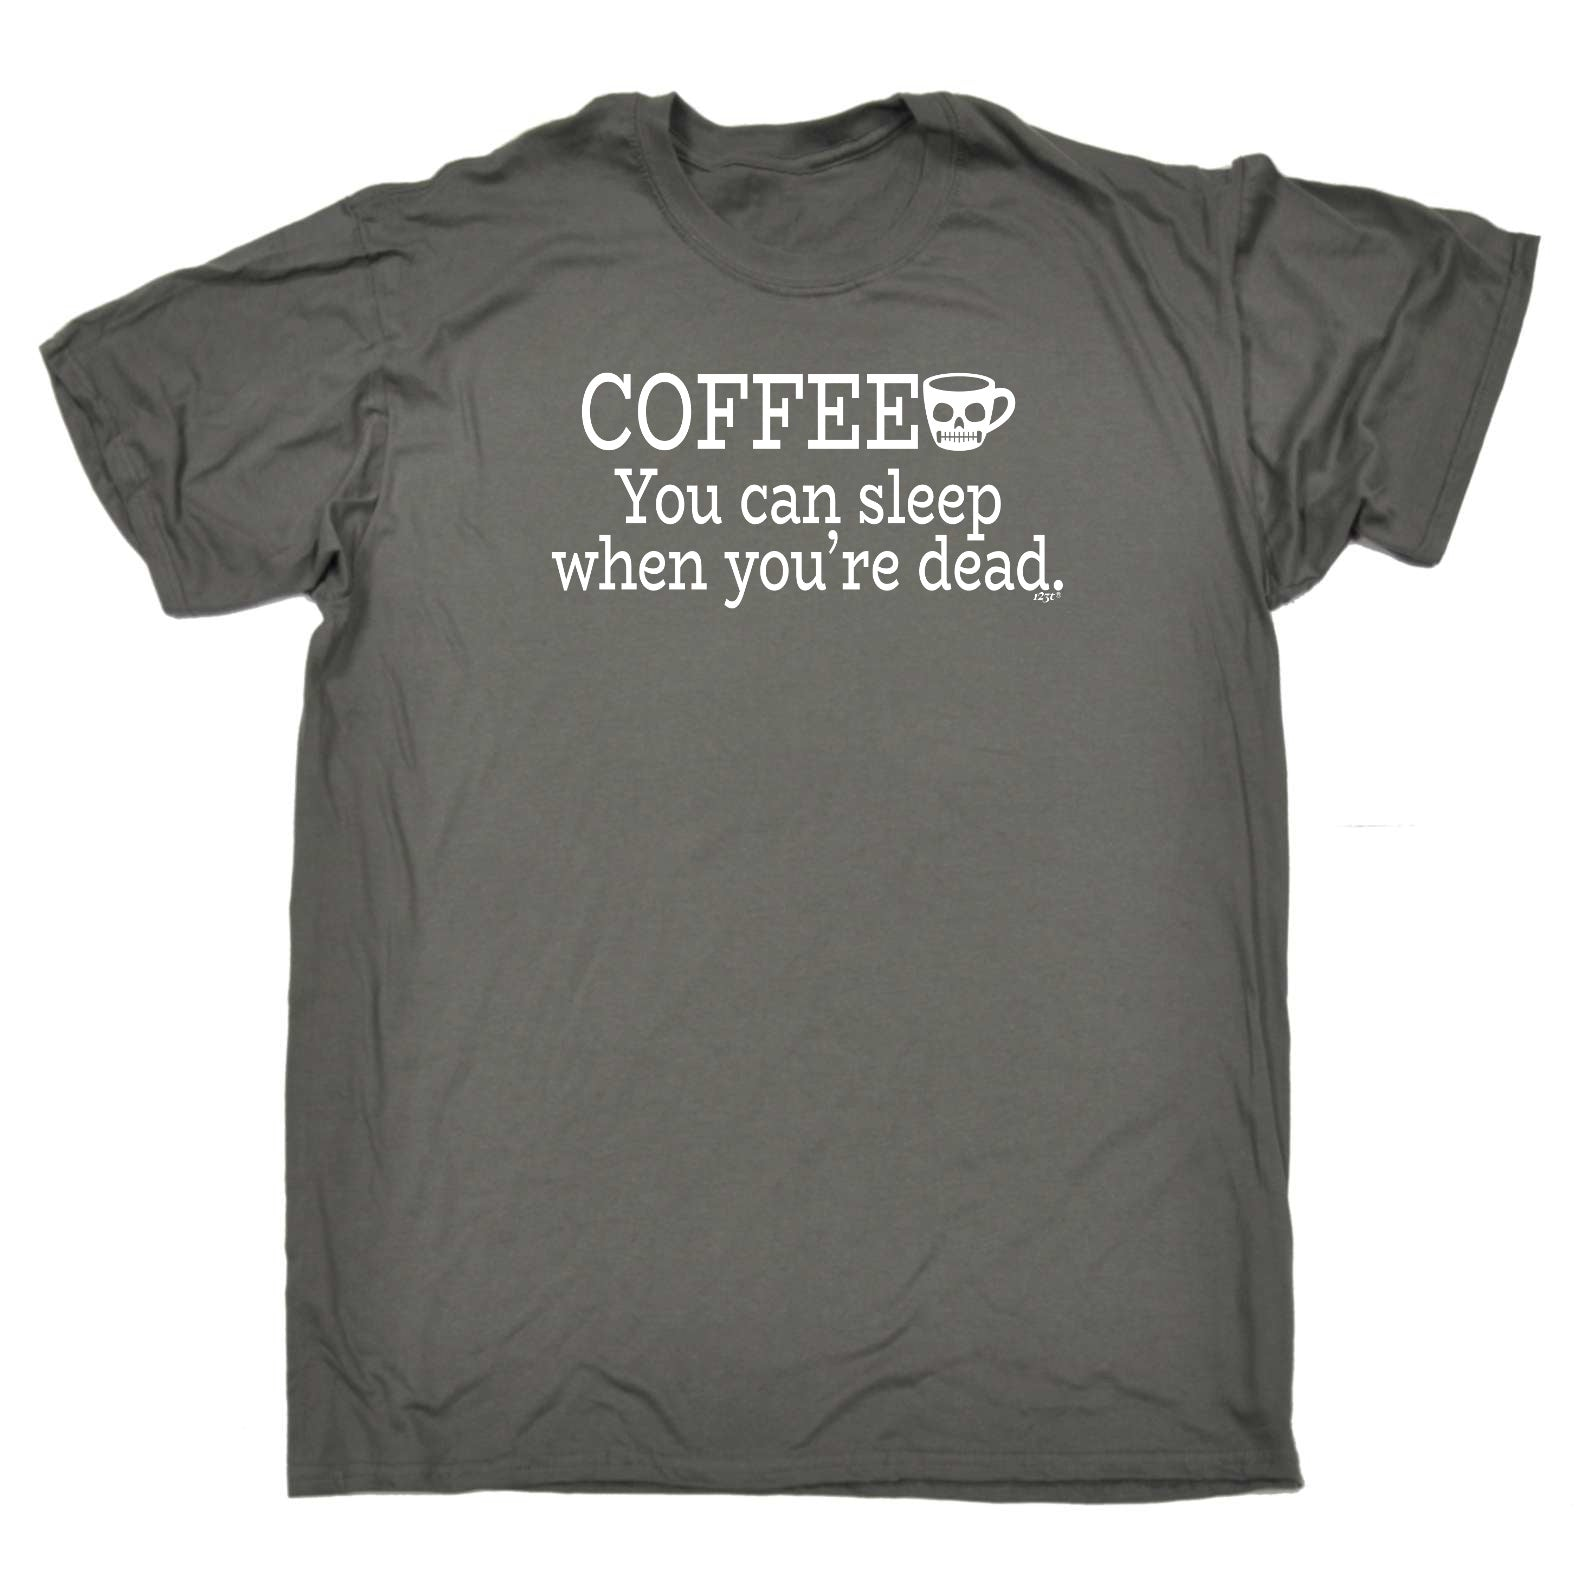 123t Funny Tee - Coffee You Can Sleep Youre Dead - Mens T-Shirt